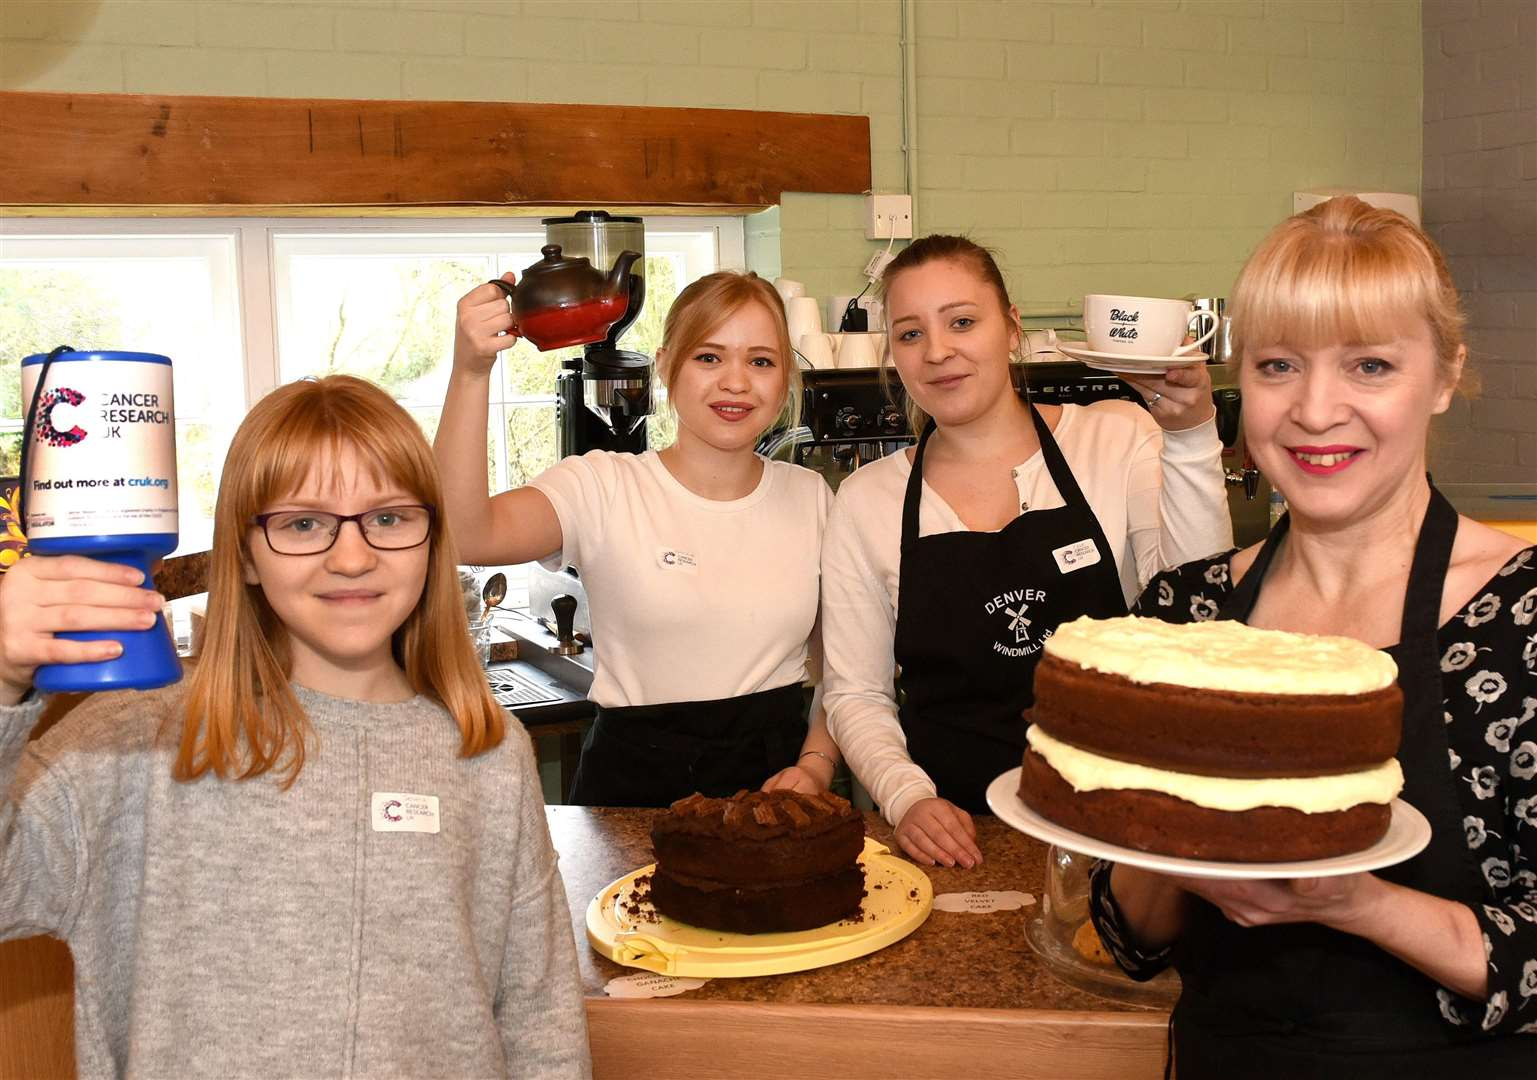 Re Opening of the Millstone Tearoom at Denver Windmill, also holding a Cancer Research UK cake bake etc fundraiser..Millstone Tearoom Manager Jill Wells, with her daughters LtoR, Jemma Eaglen (12), Beth Eaglen (21), Chloe Eaglen (23). (6928173)